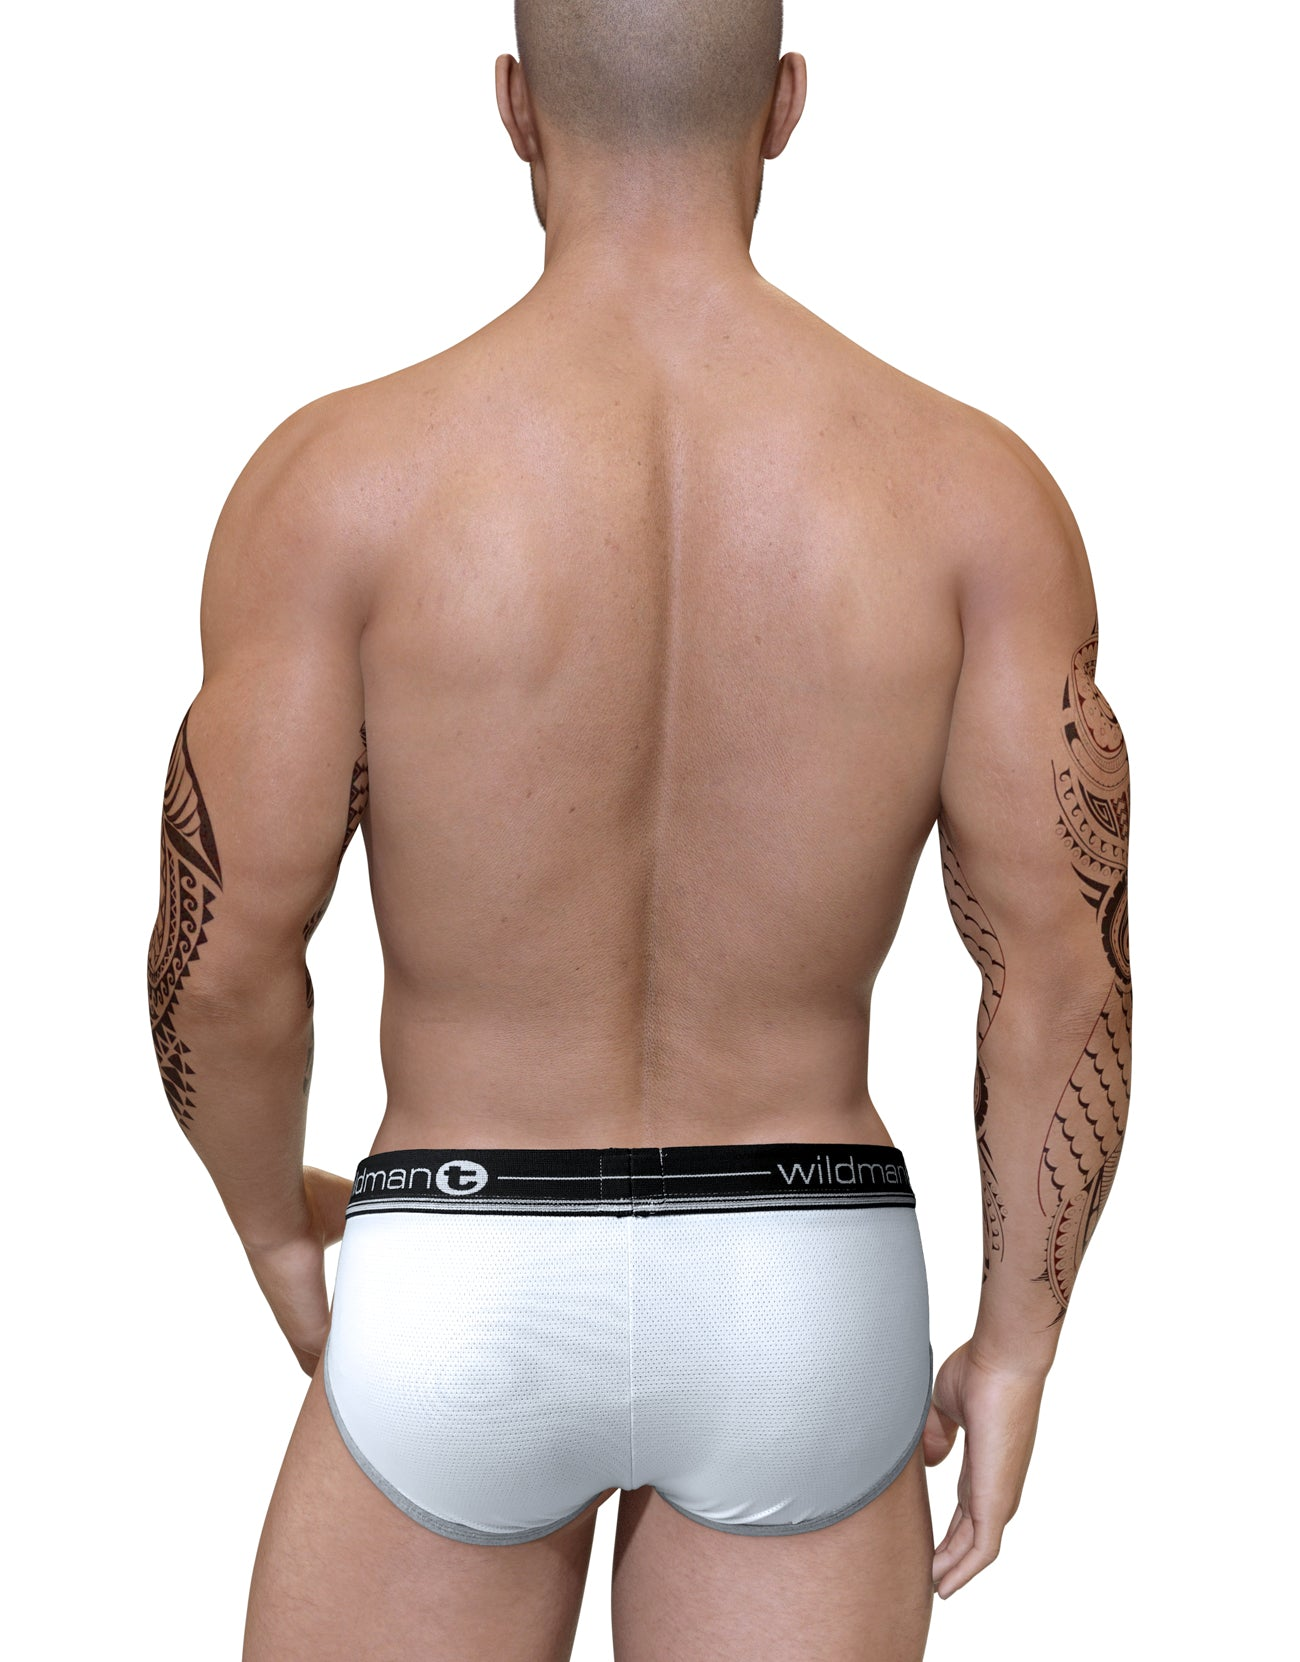 Duo Big Boy Pouch Brief Black - Big Penis Underwear, WildmanT - WildmanT